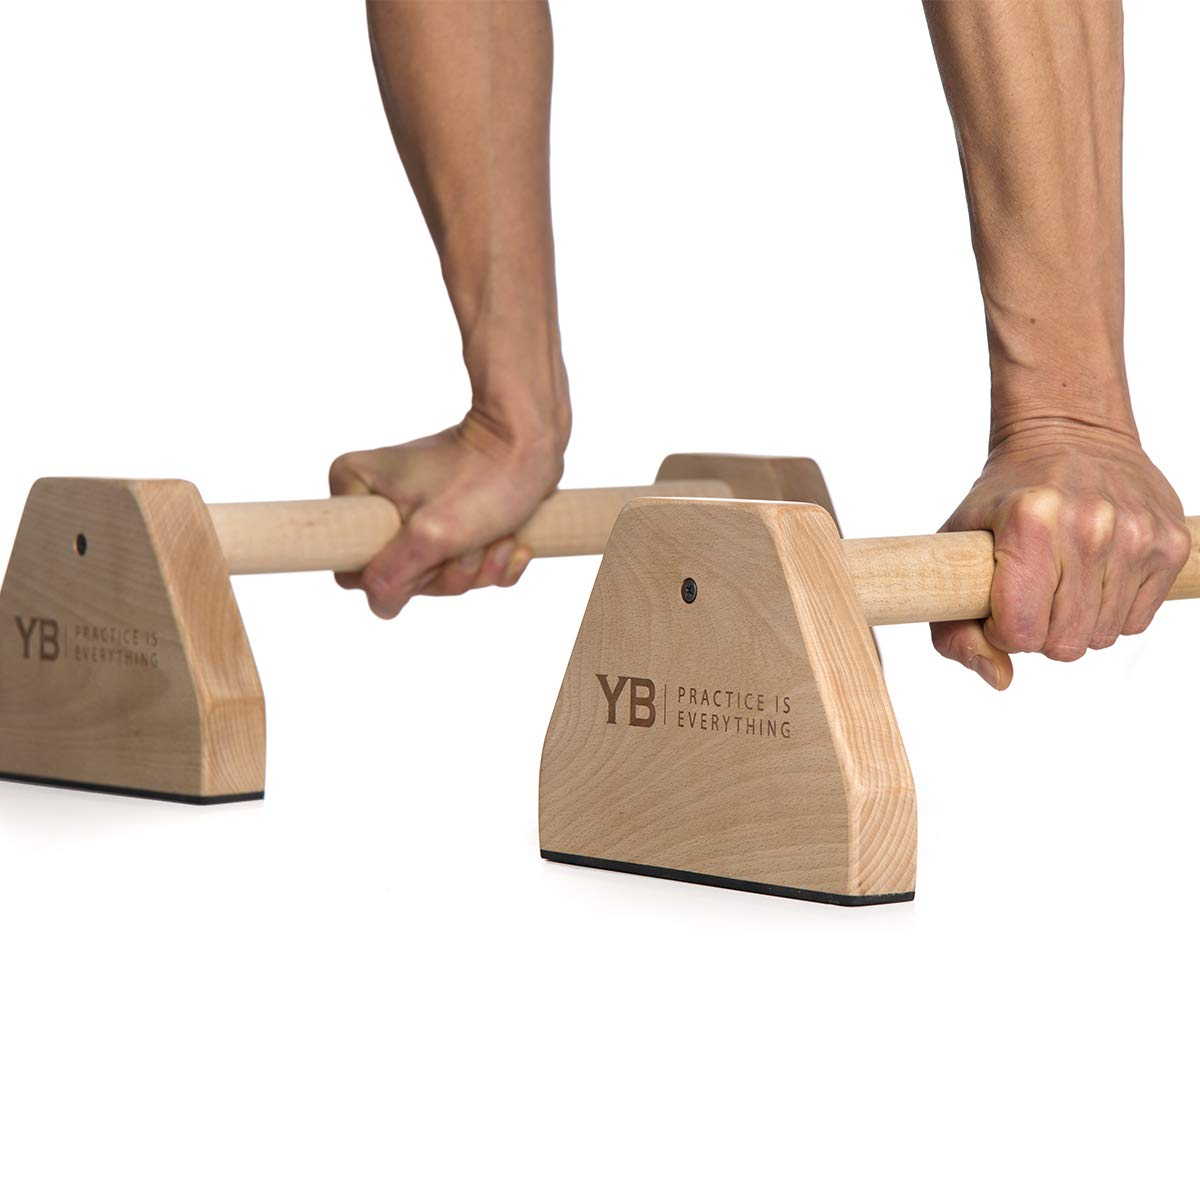 YOGABODY Birch Wood Parallettes (Set of 2)   Beautiful, Smooth, Non-Slip Yoga & Gymnastic Training Tool for L-Sits, Lolasana, Handstand Pushups, Jump Backs & More by YOGABODY (Image #2)